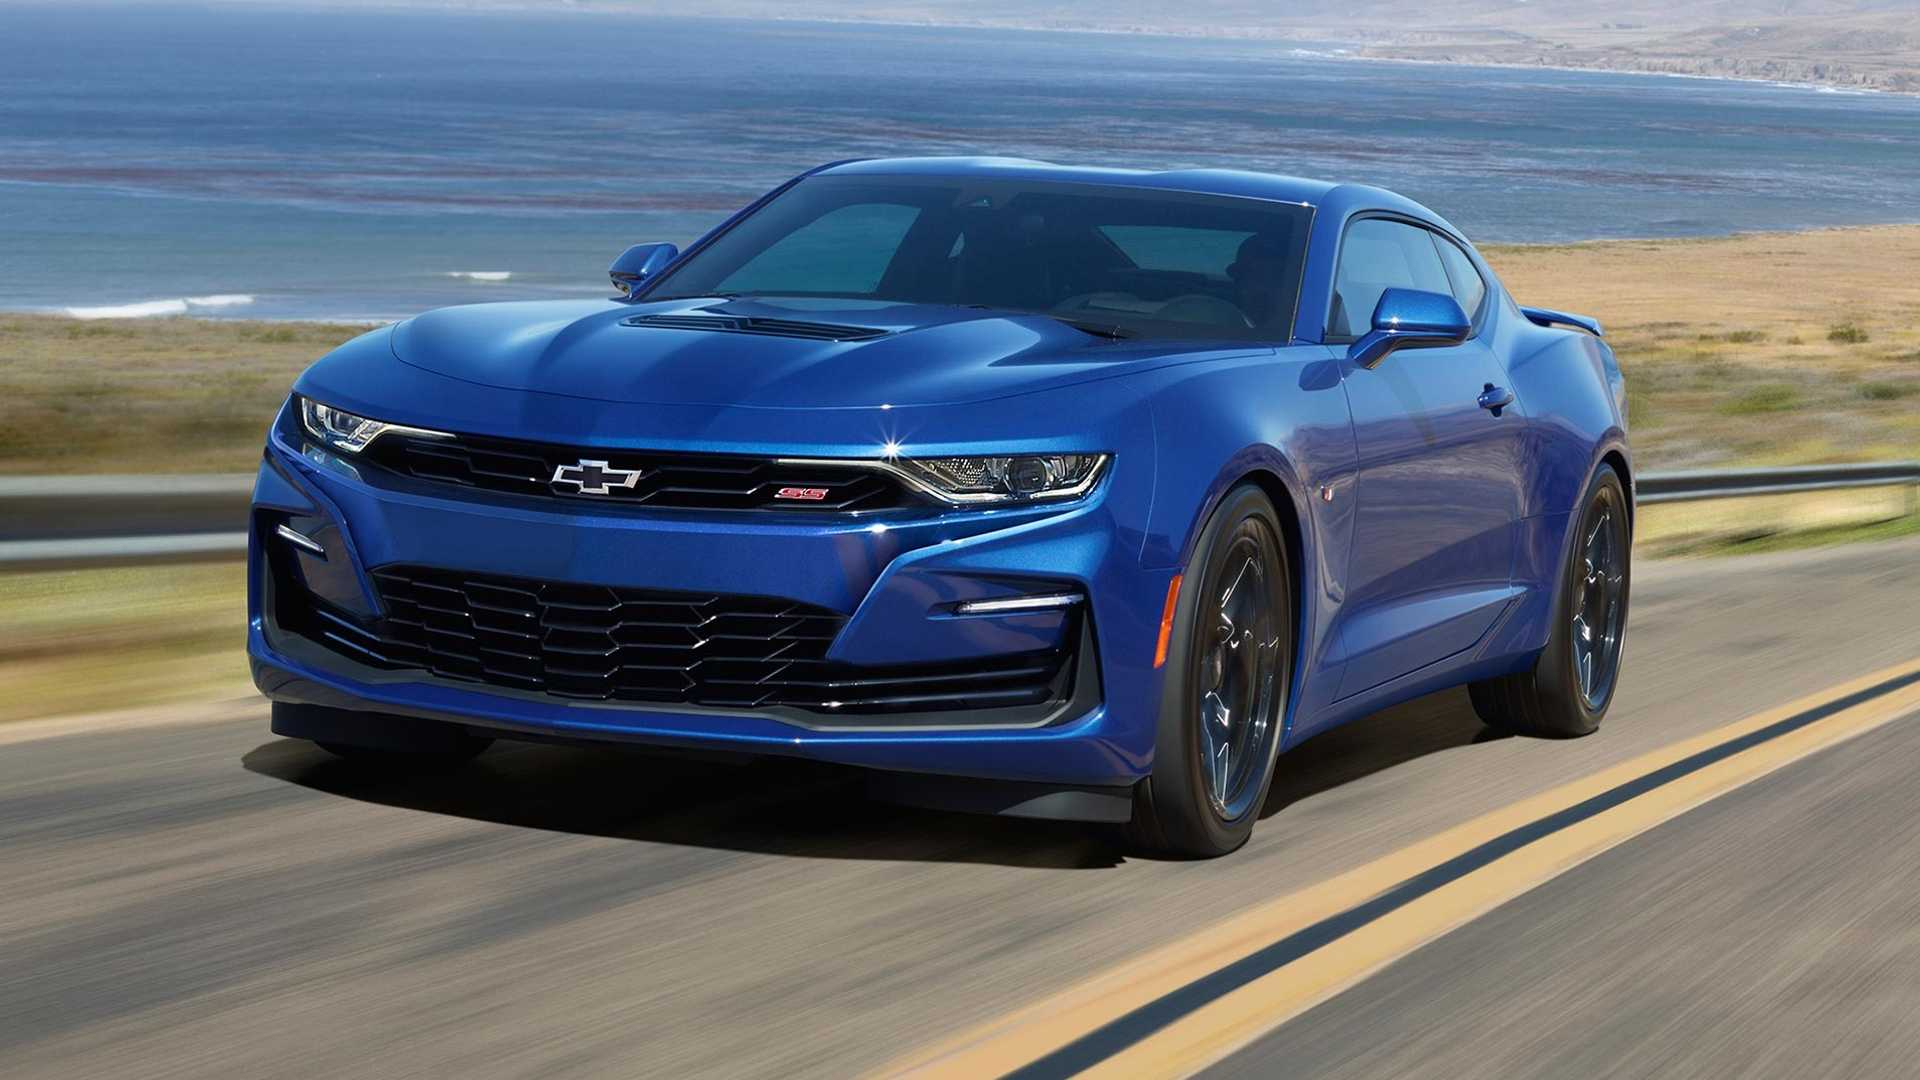 Chevy Camaro Being Discontinued After 2023: Report 2022 Chevy Camaro Transmission, Tire Size, Used